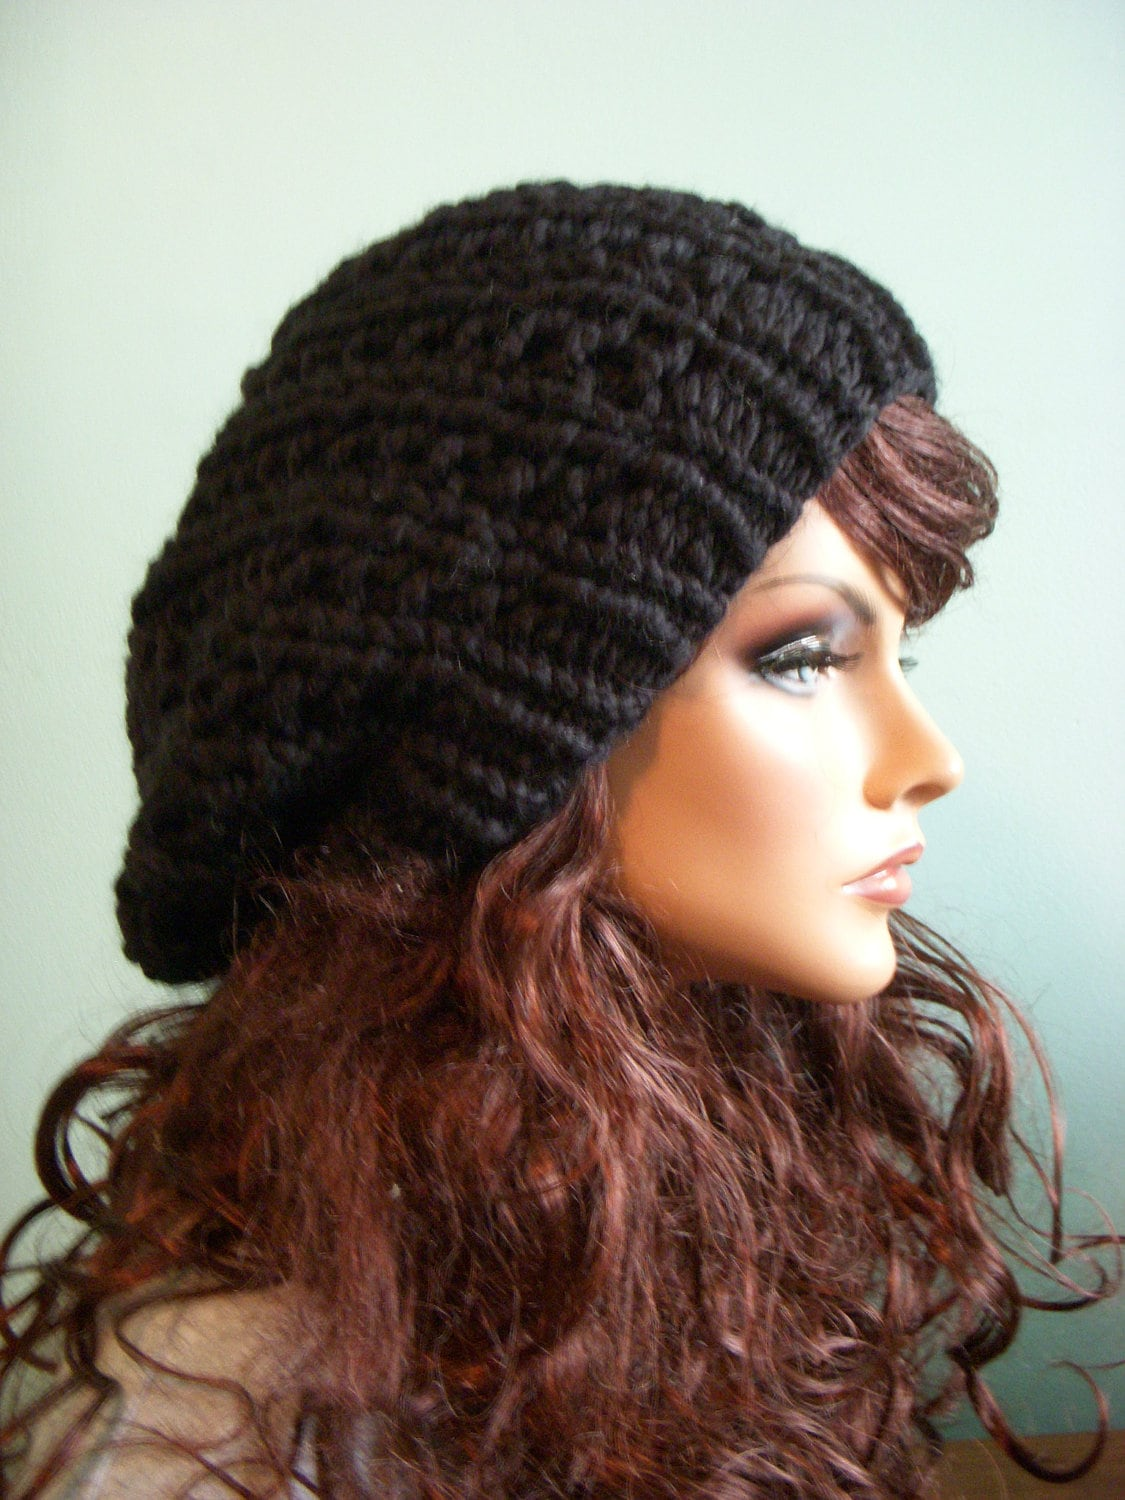 Black Slouchy Chunky Knitted Hat Hand Knit Jet Black Beret